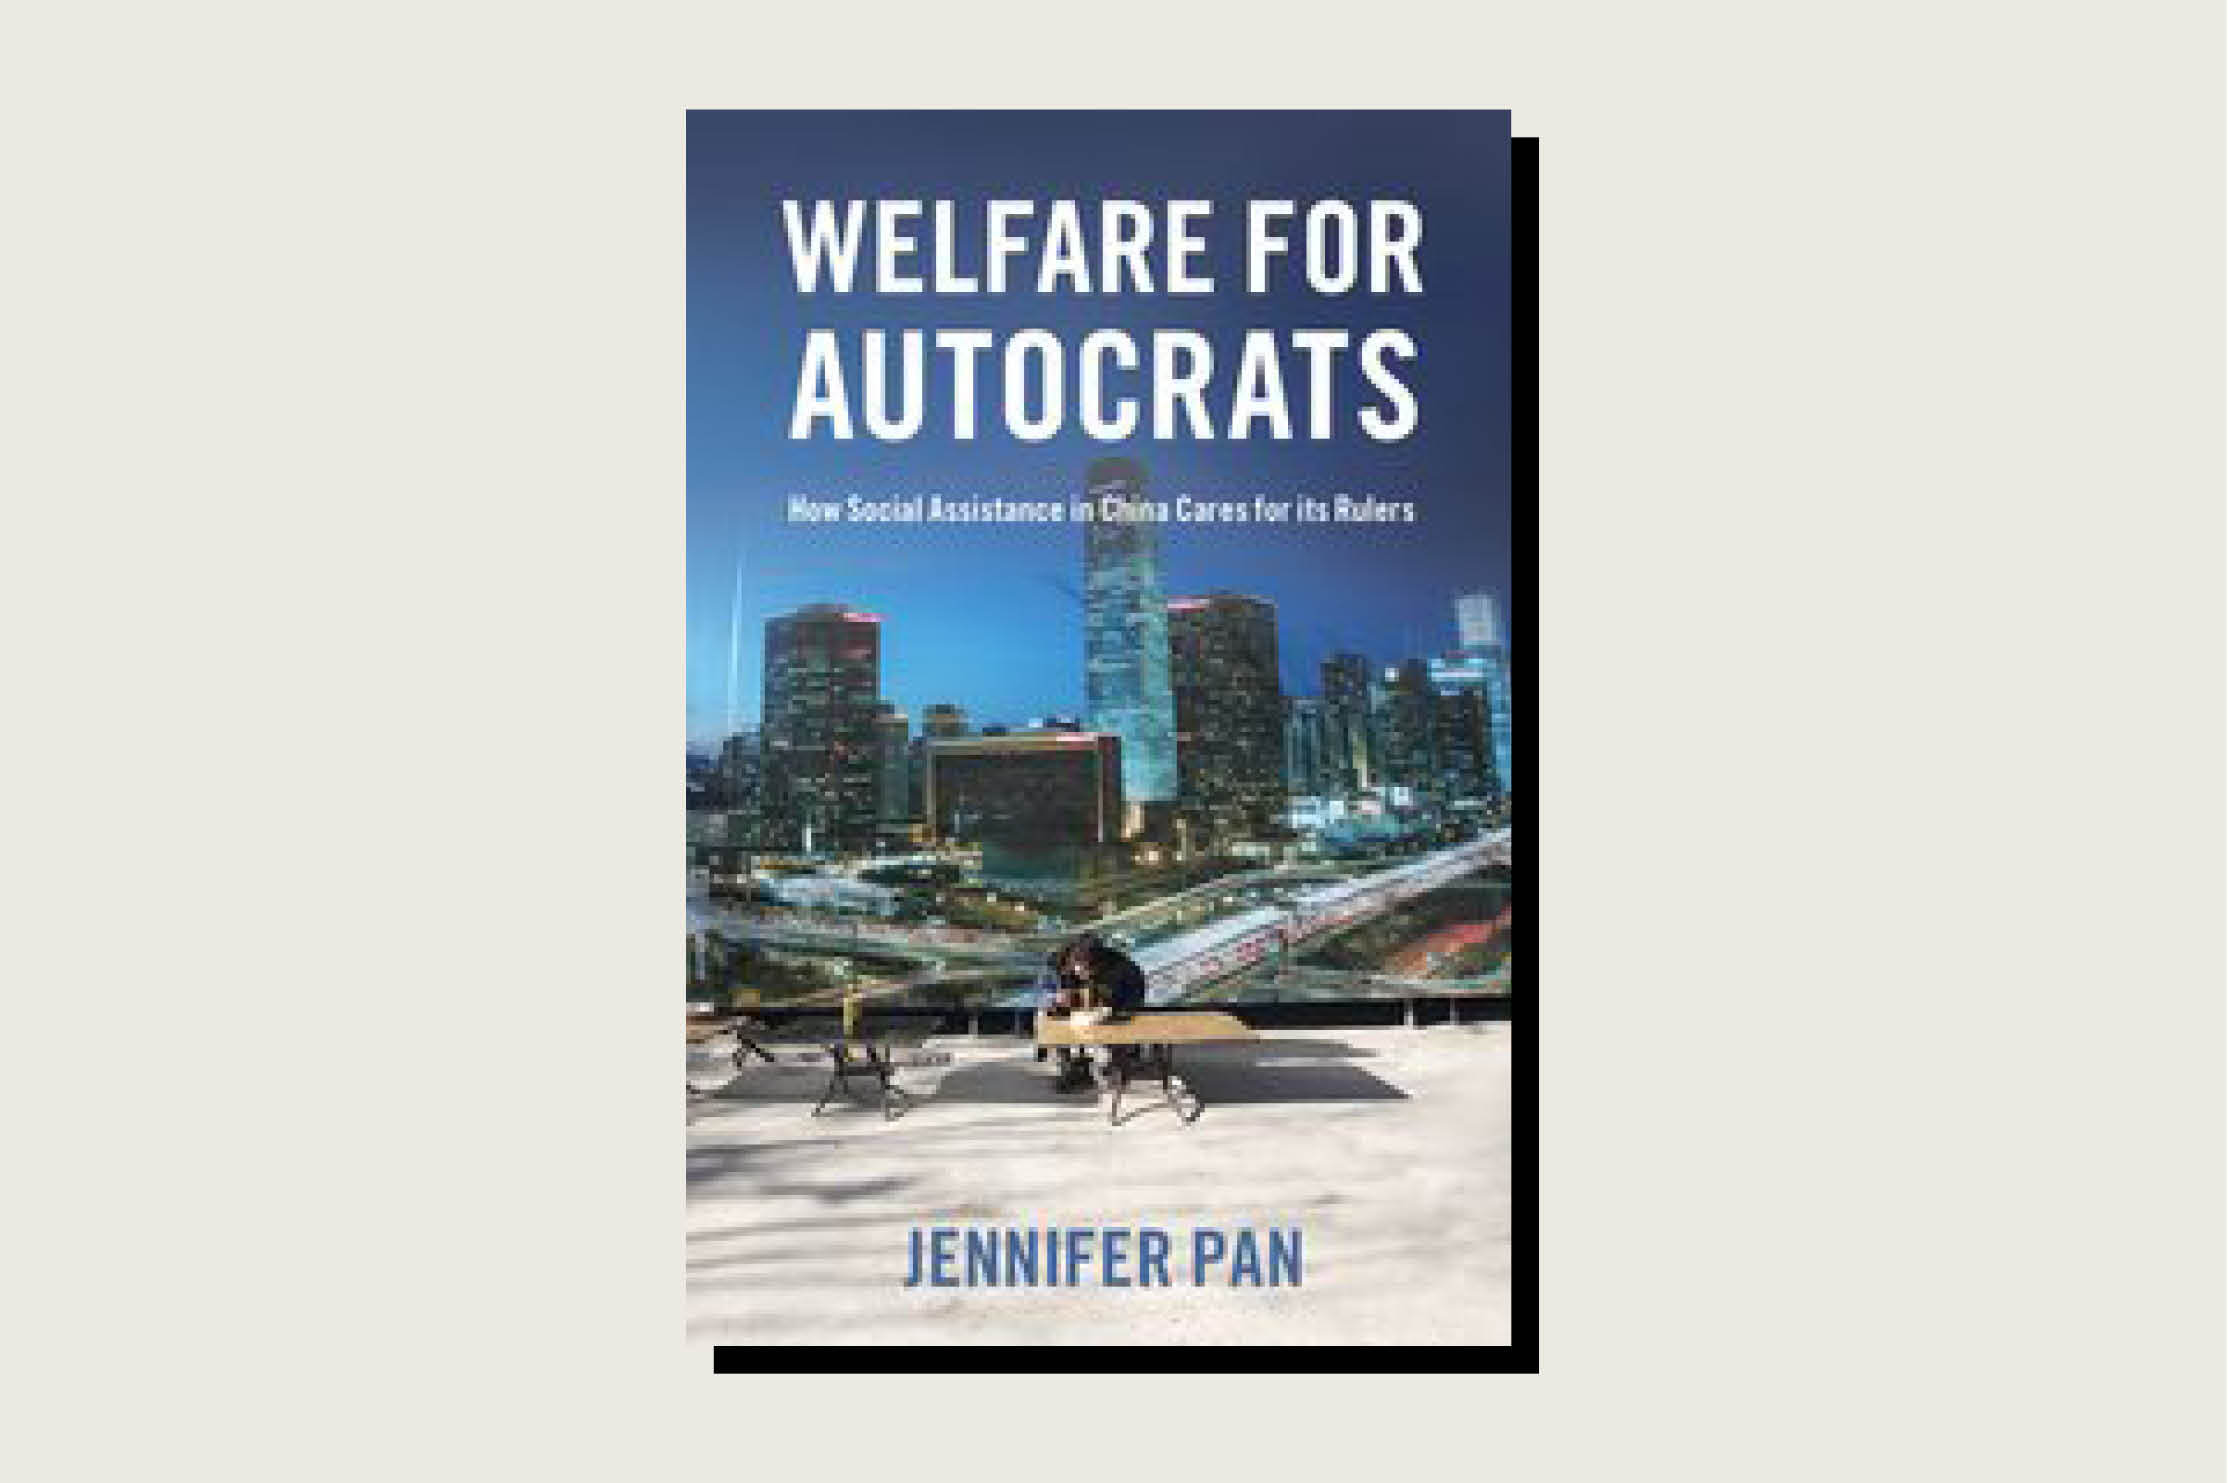 Welfare for Autocrats: How Social Assistance in China Cares for its Rulers, Jennifer Pan, Oxford University Press, May 2020, 248 pp.